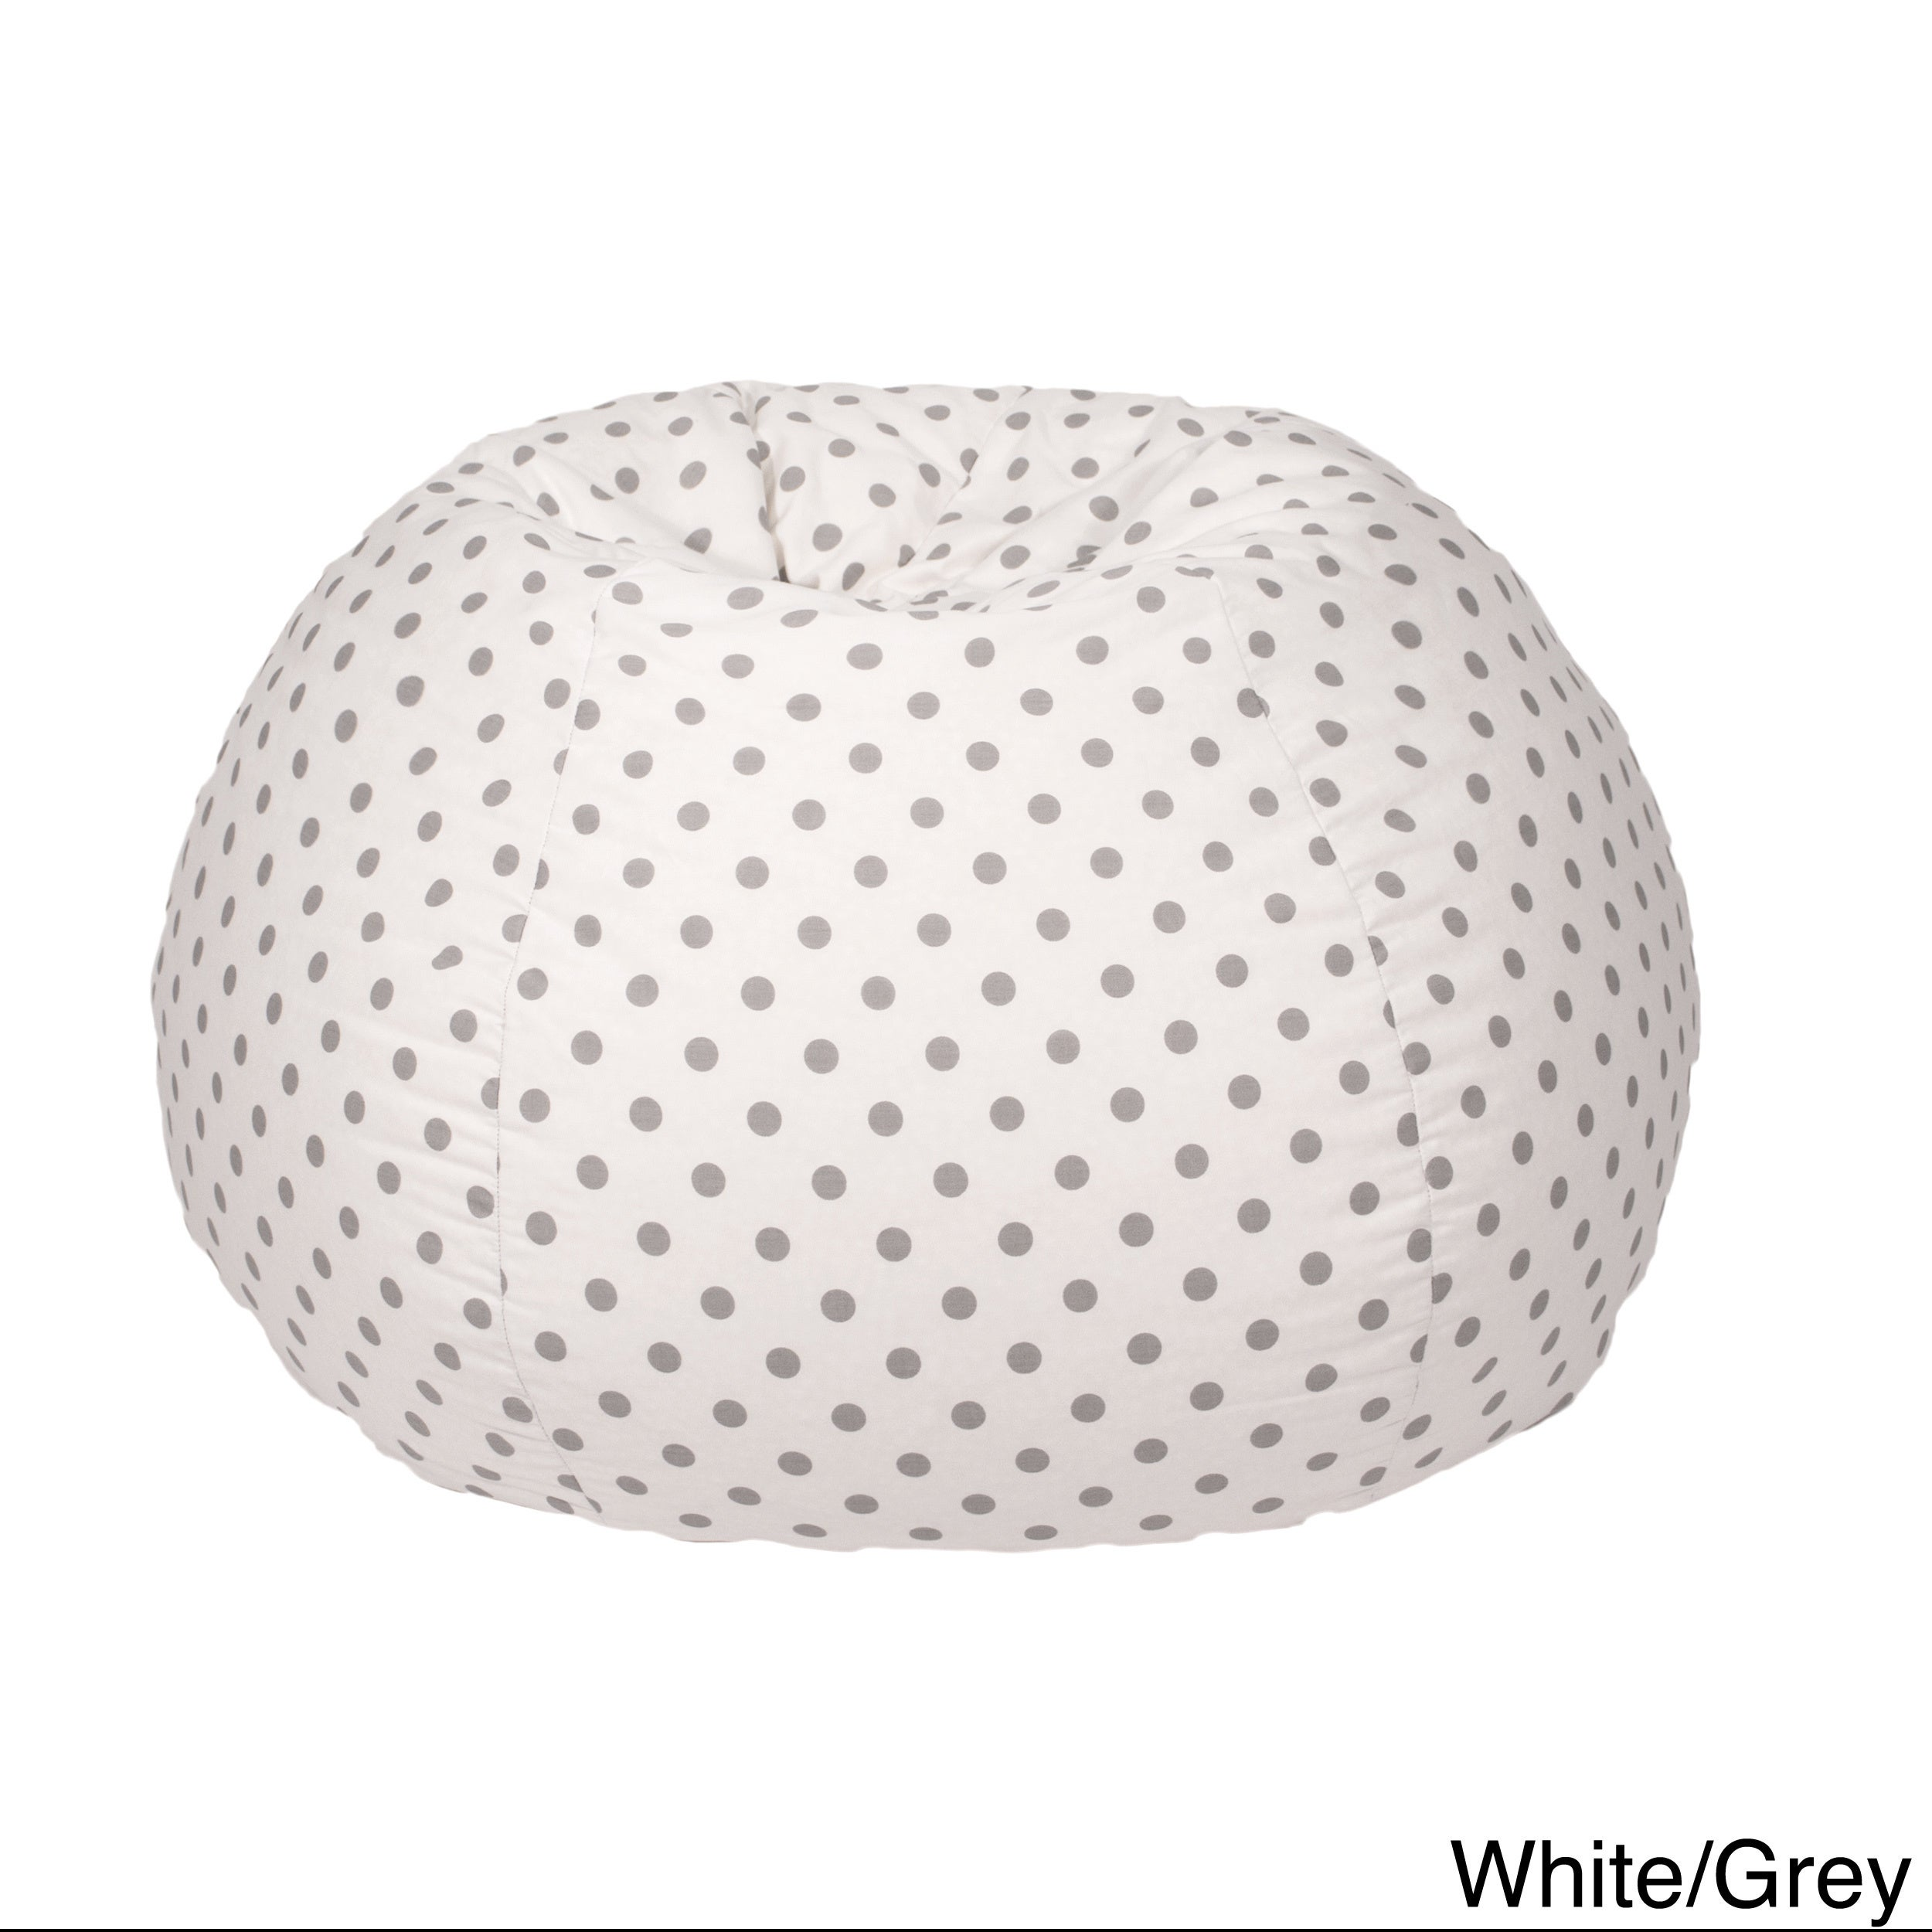 Gold Medal Polka Dotted Twill Cotton Bean Bag (White/Grey...